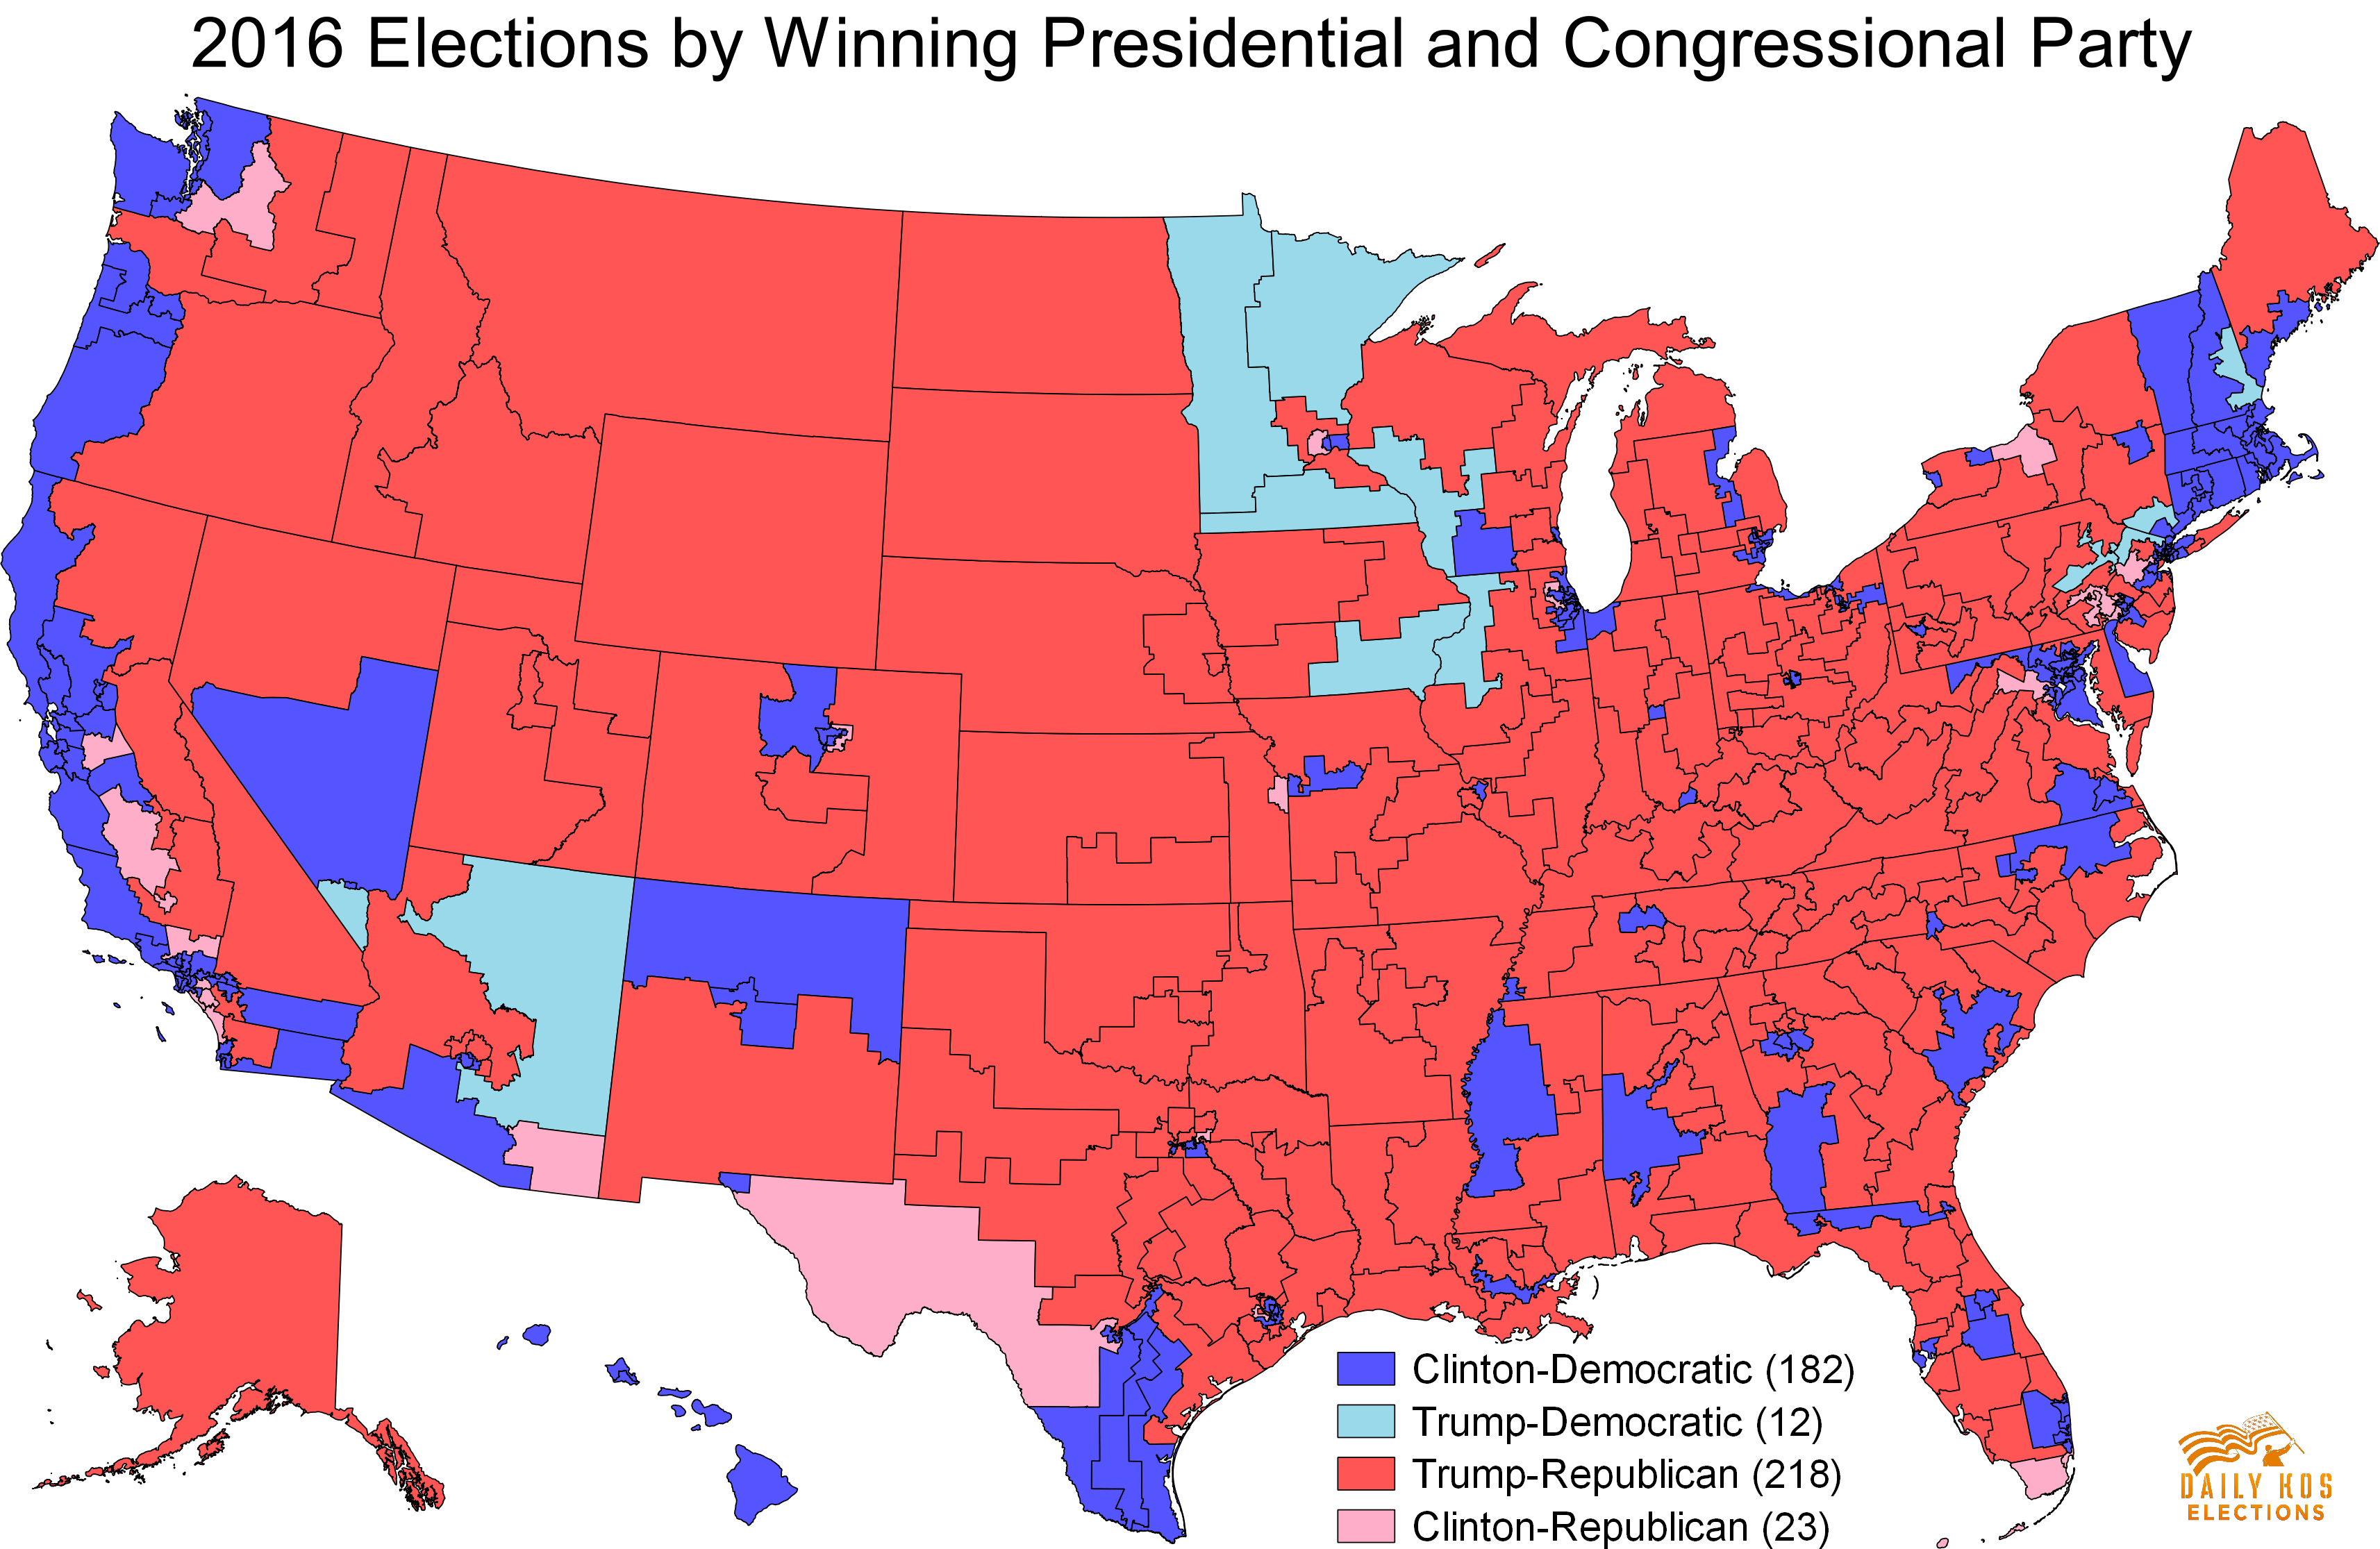 Daily Kos Elections Presents The 2016 Presidential Election Results